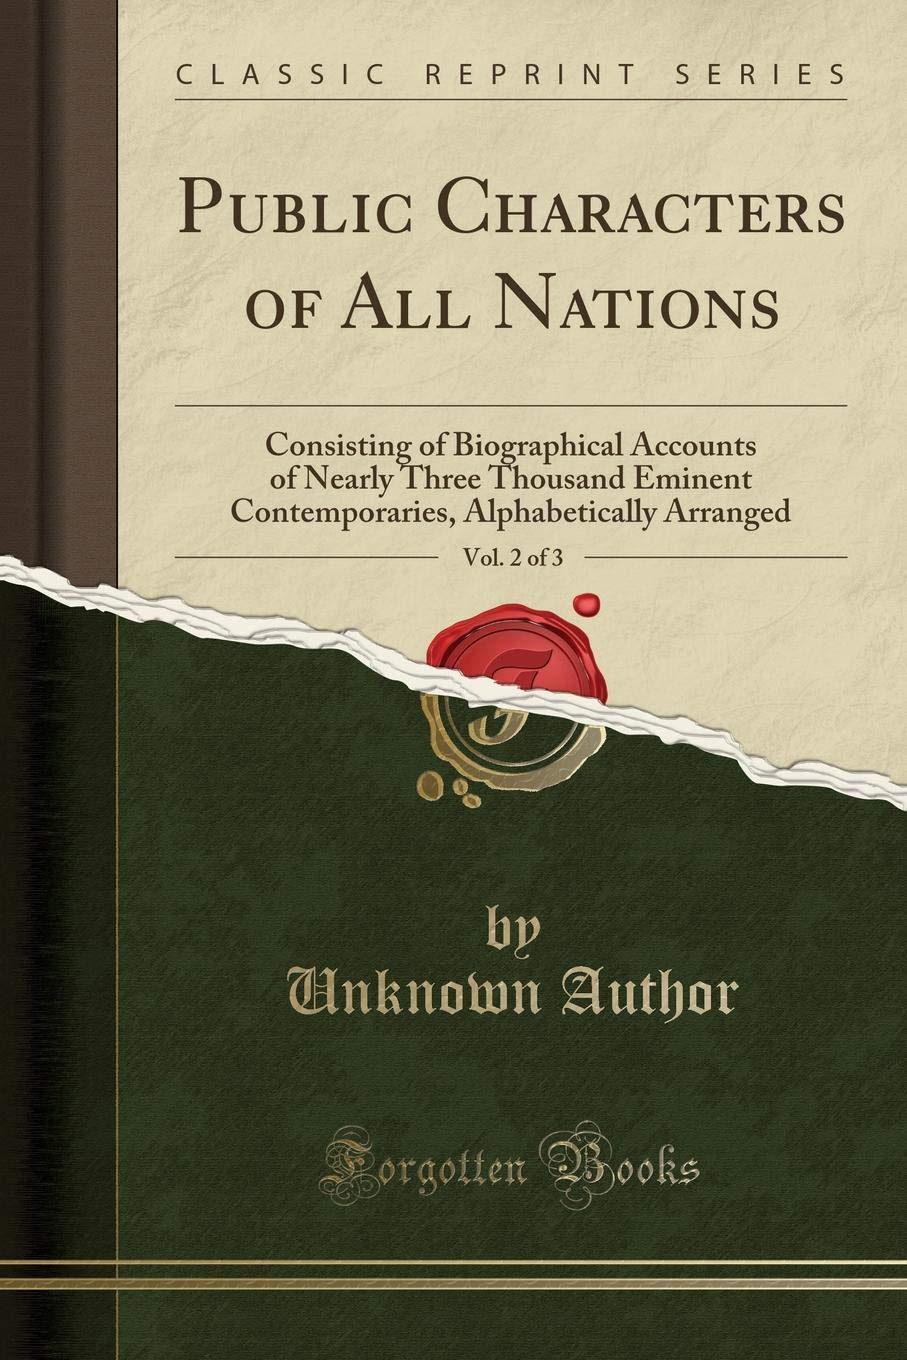 Download Public Characters of All Nations, Vol. 2 of 3: Consisting of Biographical Accounts of Nearly Three Thousand Eminent Contemporaries, Alphabetically Arranged (Classic Reprint) pdf